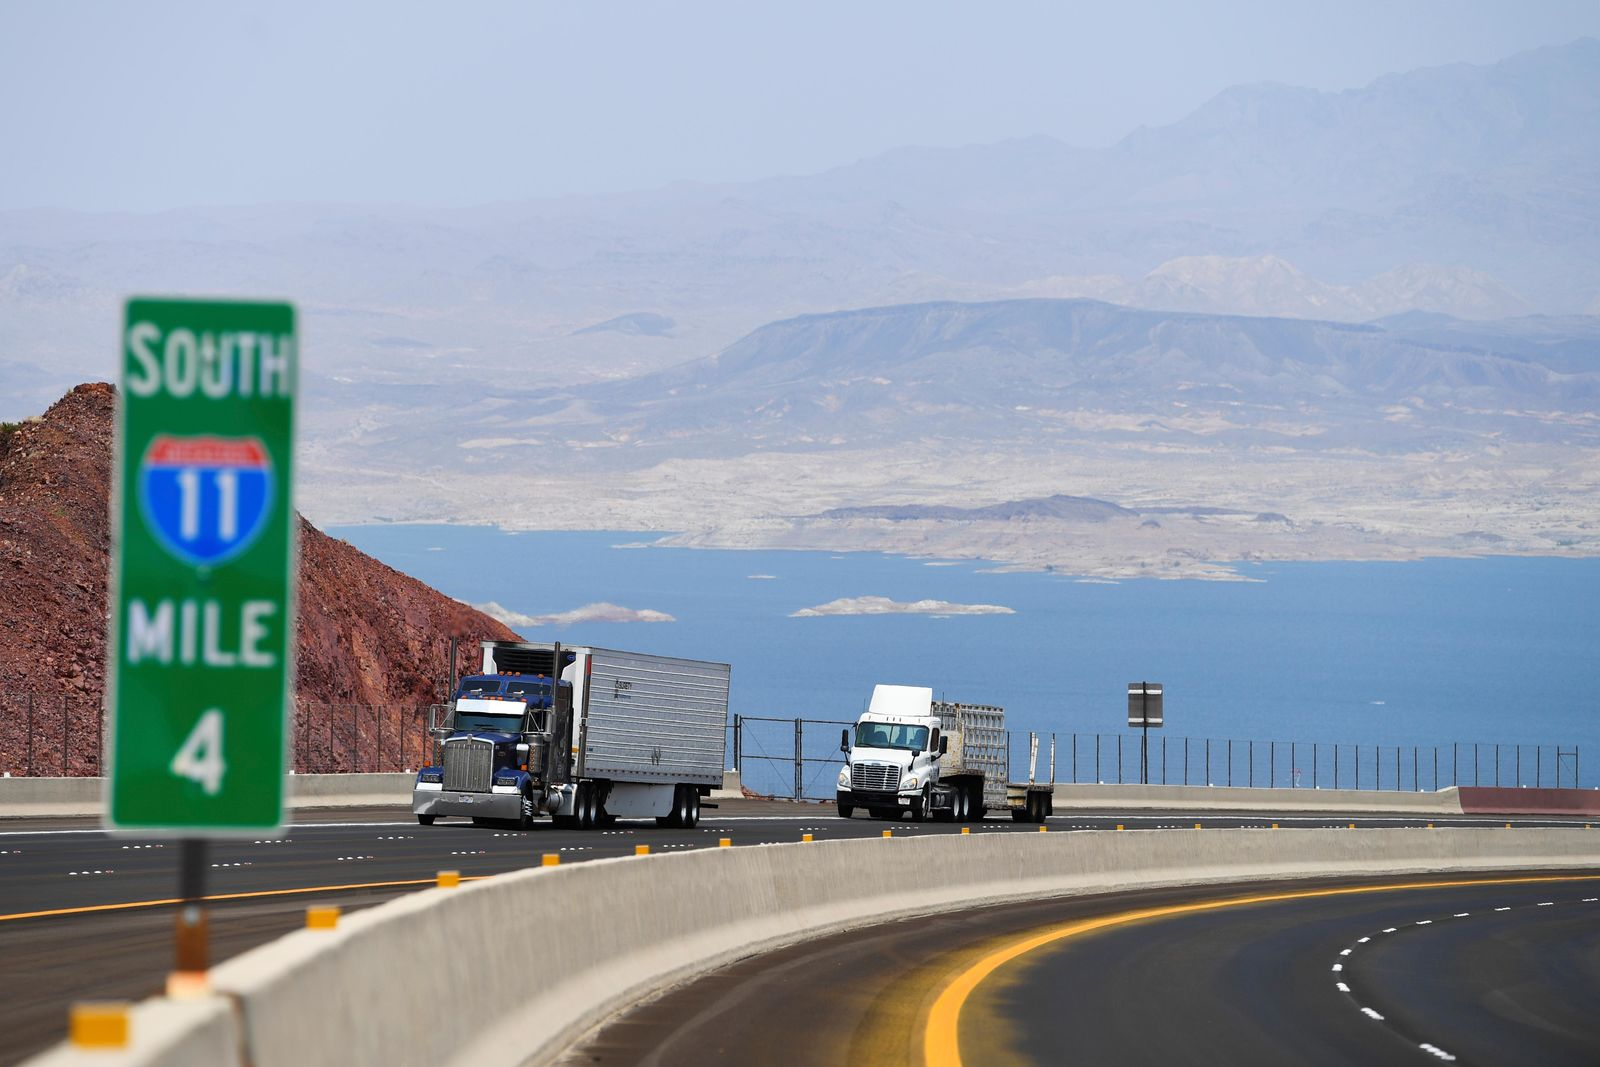 Traffic travels north on Interstate 11 after the grand opening of a new section of the highway Thursday, August 9, 2018, in Boulder City. The section, also referred to as the Boulder City Bypass, marks the official start of the I-11 project between Las Vegas and Phoenix. CREDIT: Sam Morris/Las Vegas News Bureau